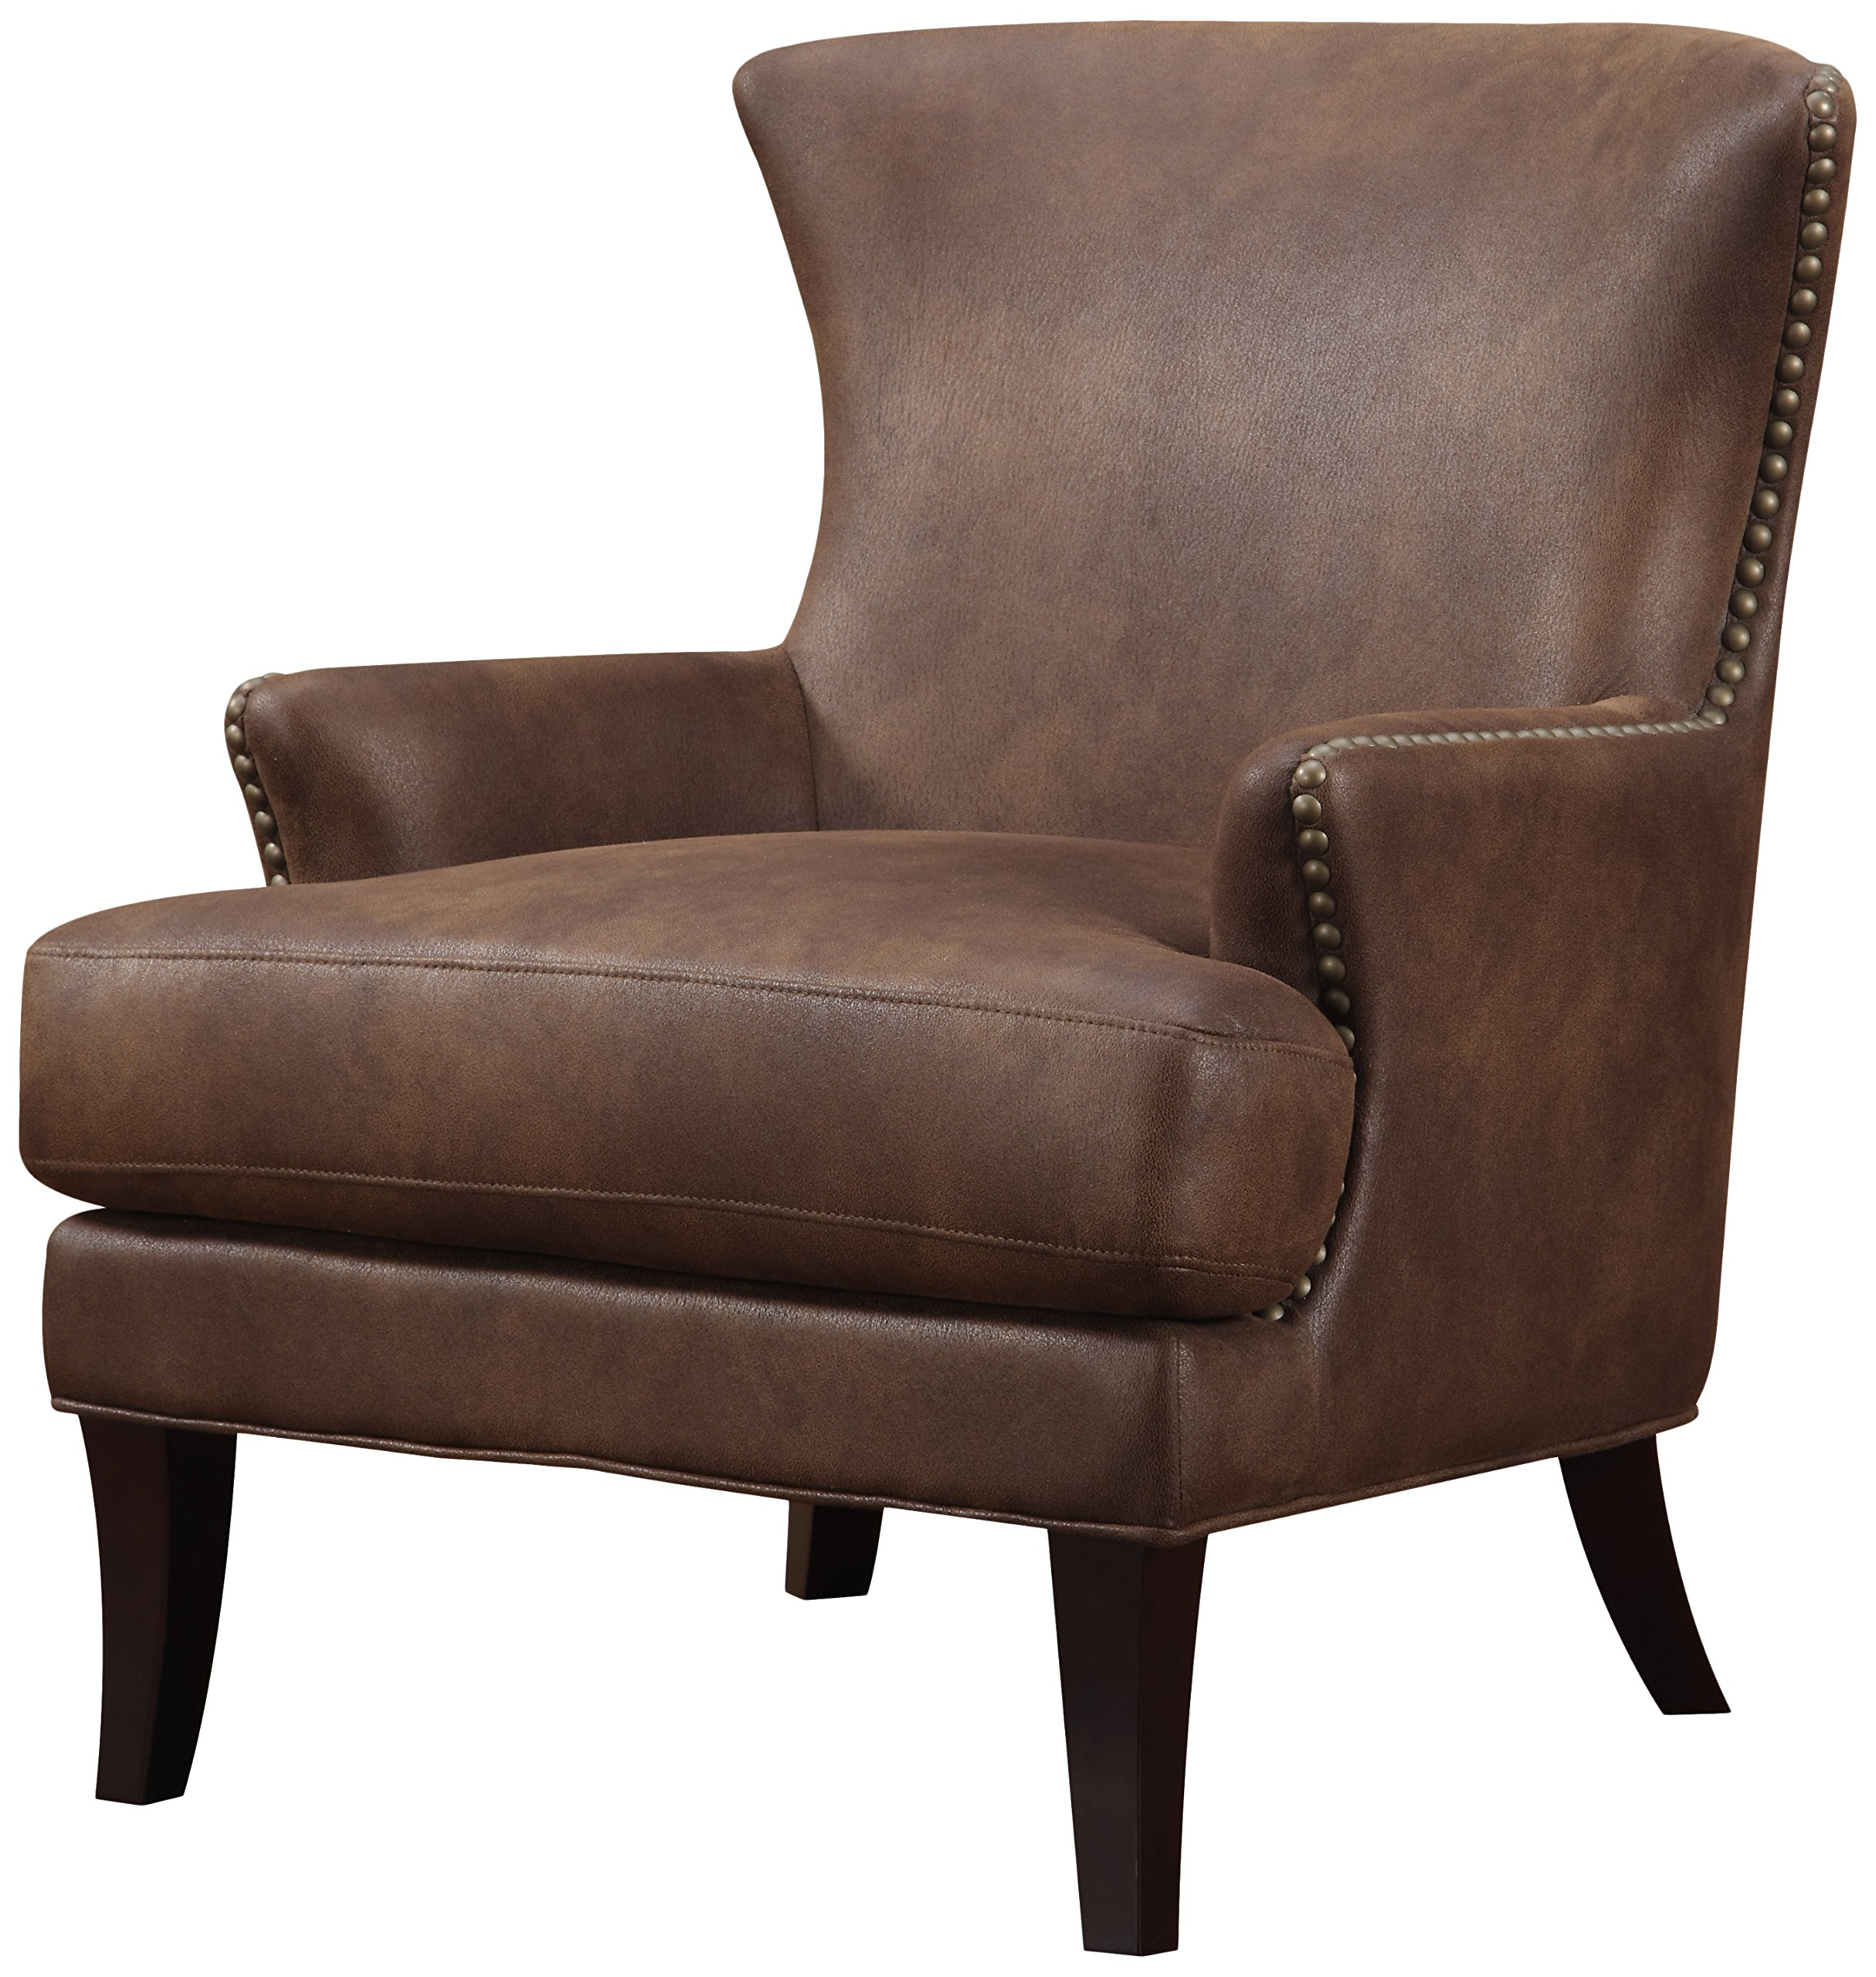 Emerald Home Brown Accent Chair with Faux Suede Upholstery and Nailhead Trim